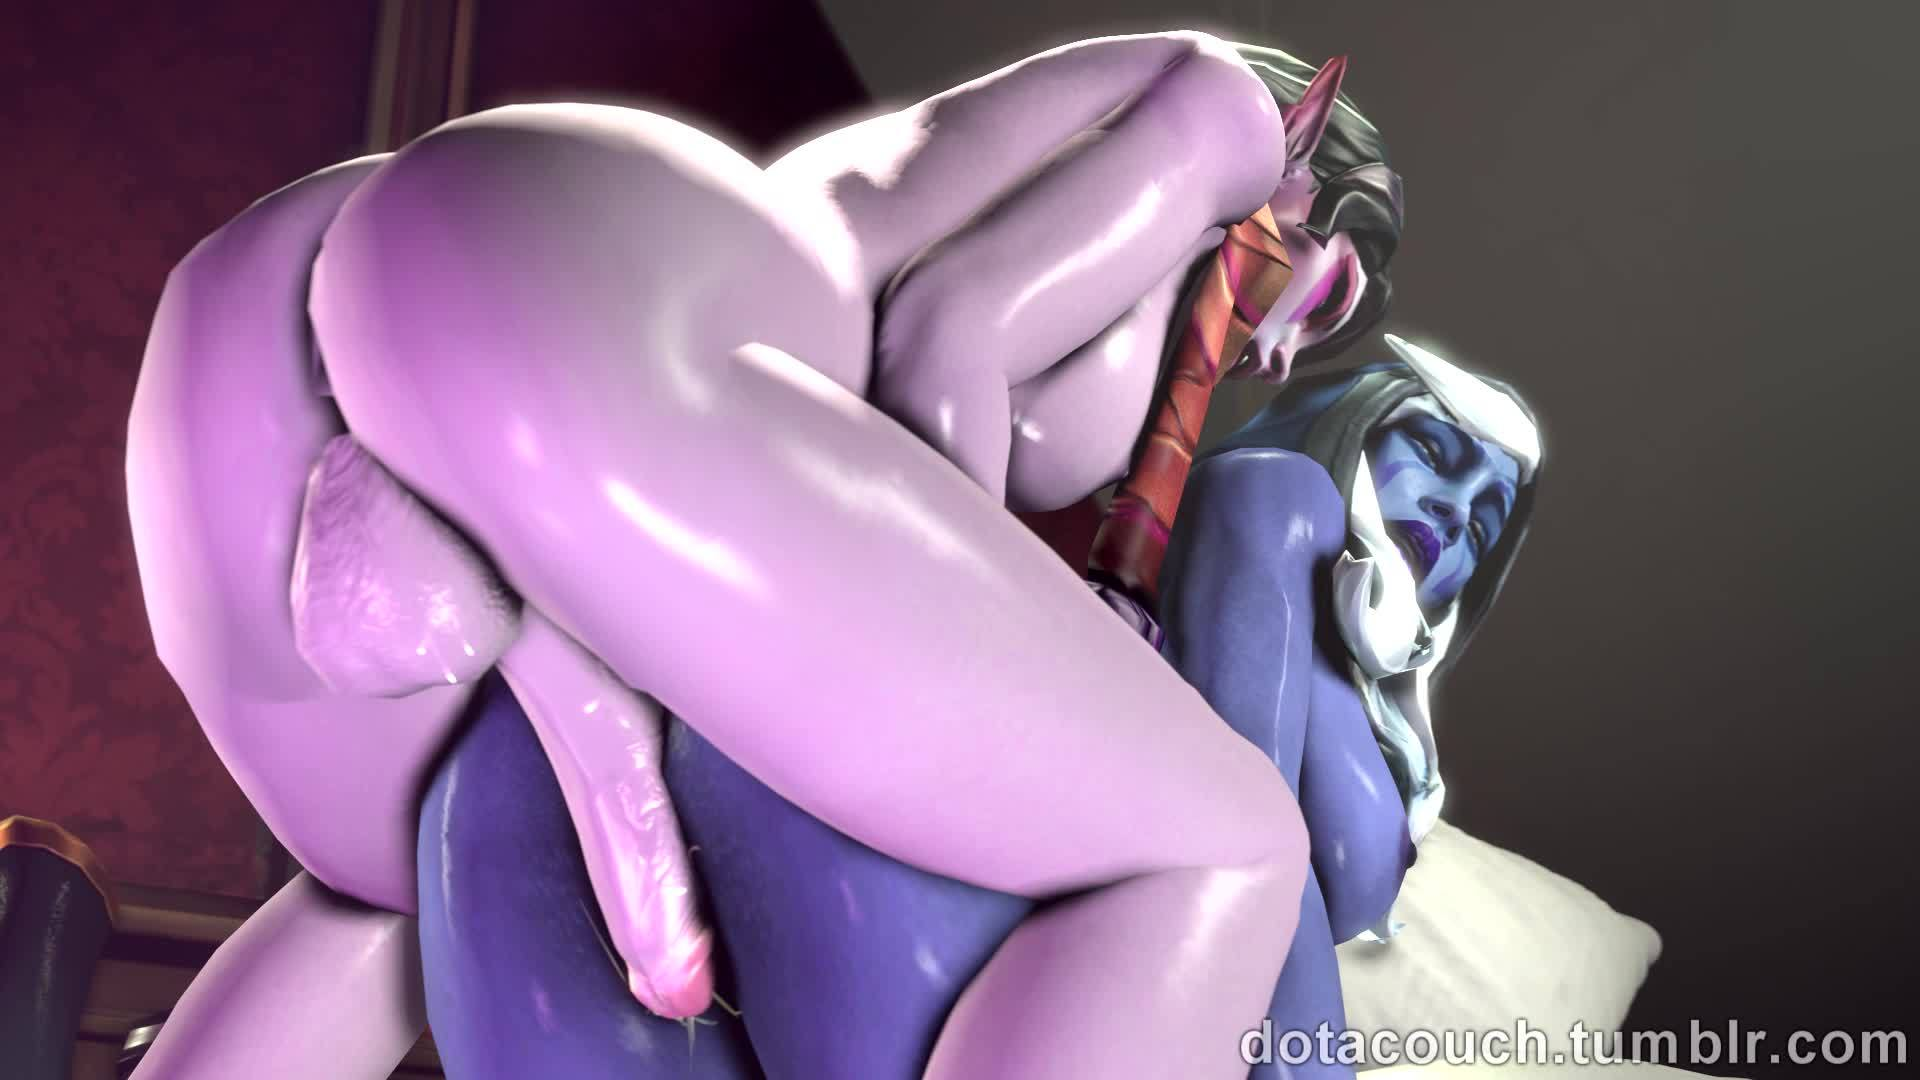 Animated dota naked sex cartoon galleries